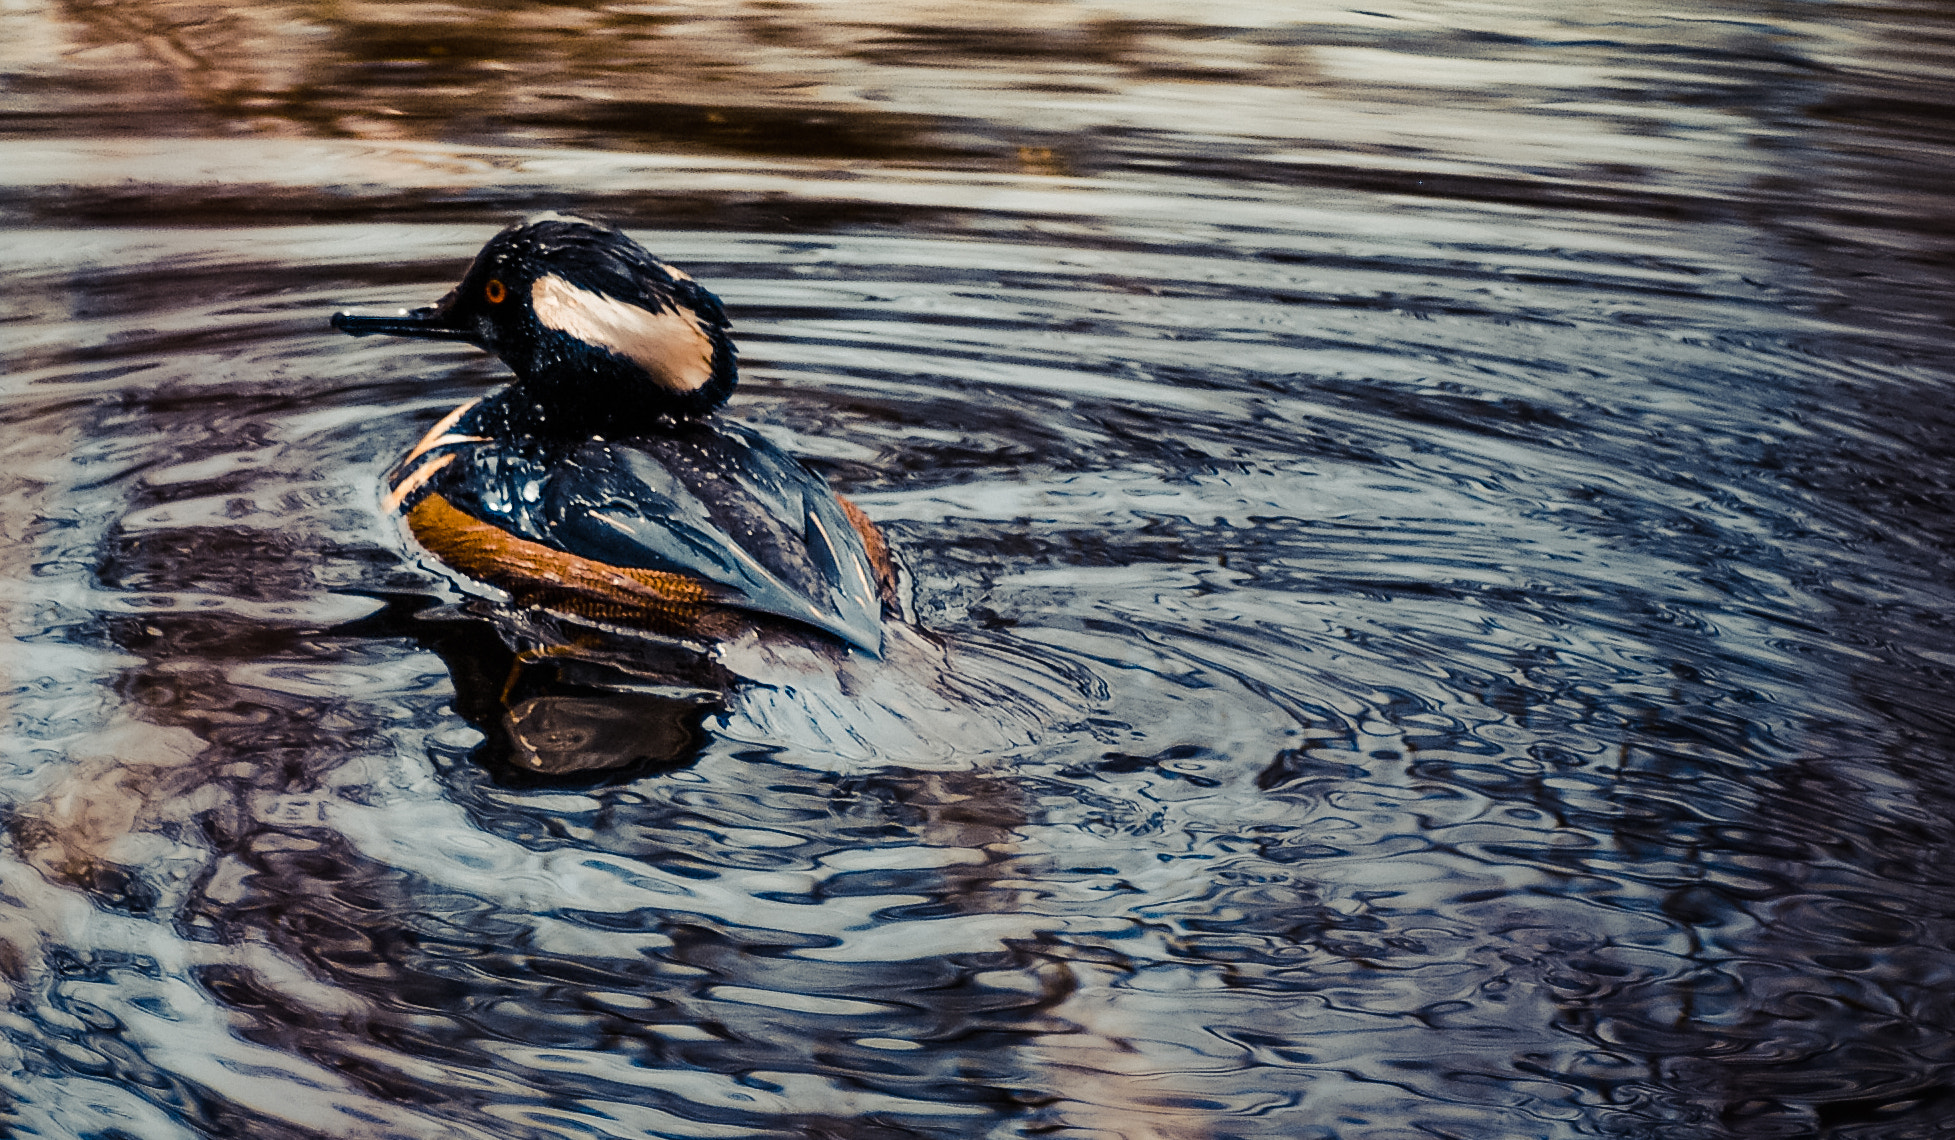 Photograph Hooded Merganser by Liberty Montano on 500px